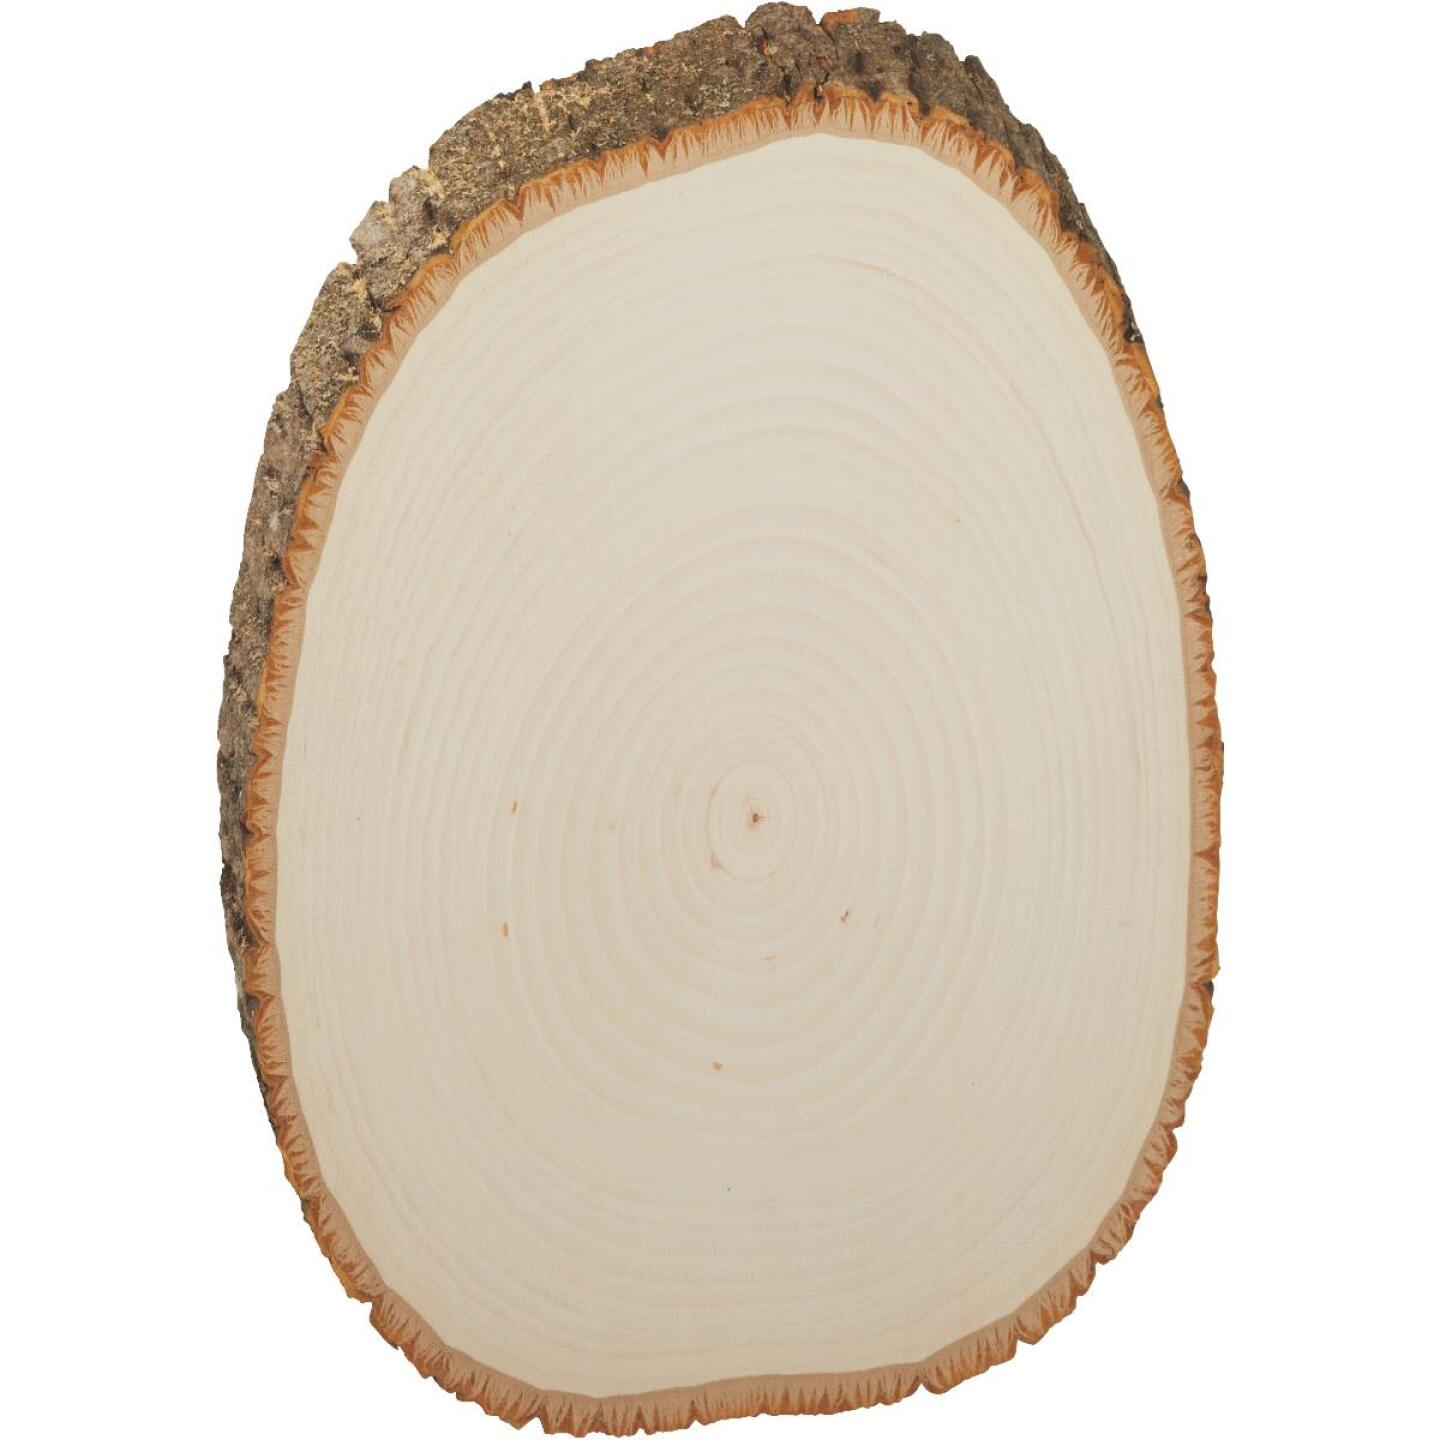 Walnut Hollow Basswood Country Rounds 7 to 9 In. Oval Live Edge Circle Plank Image 1